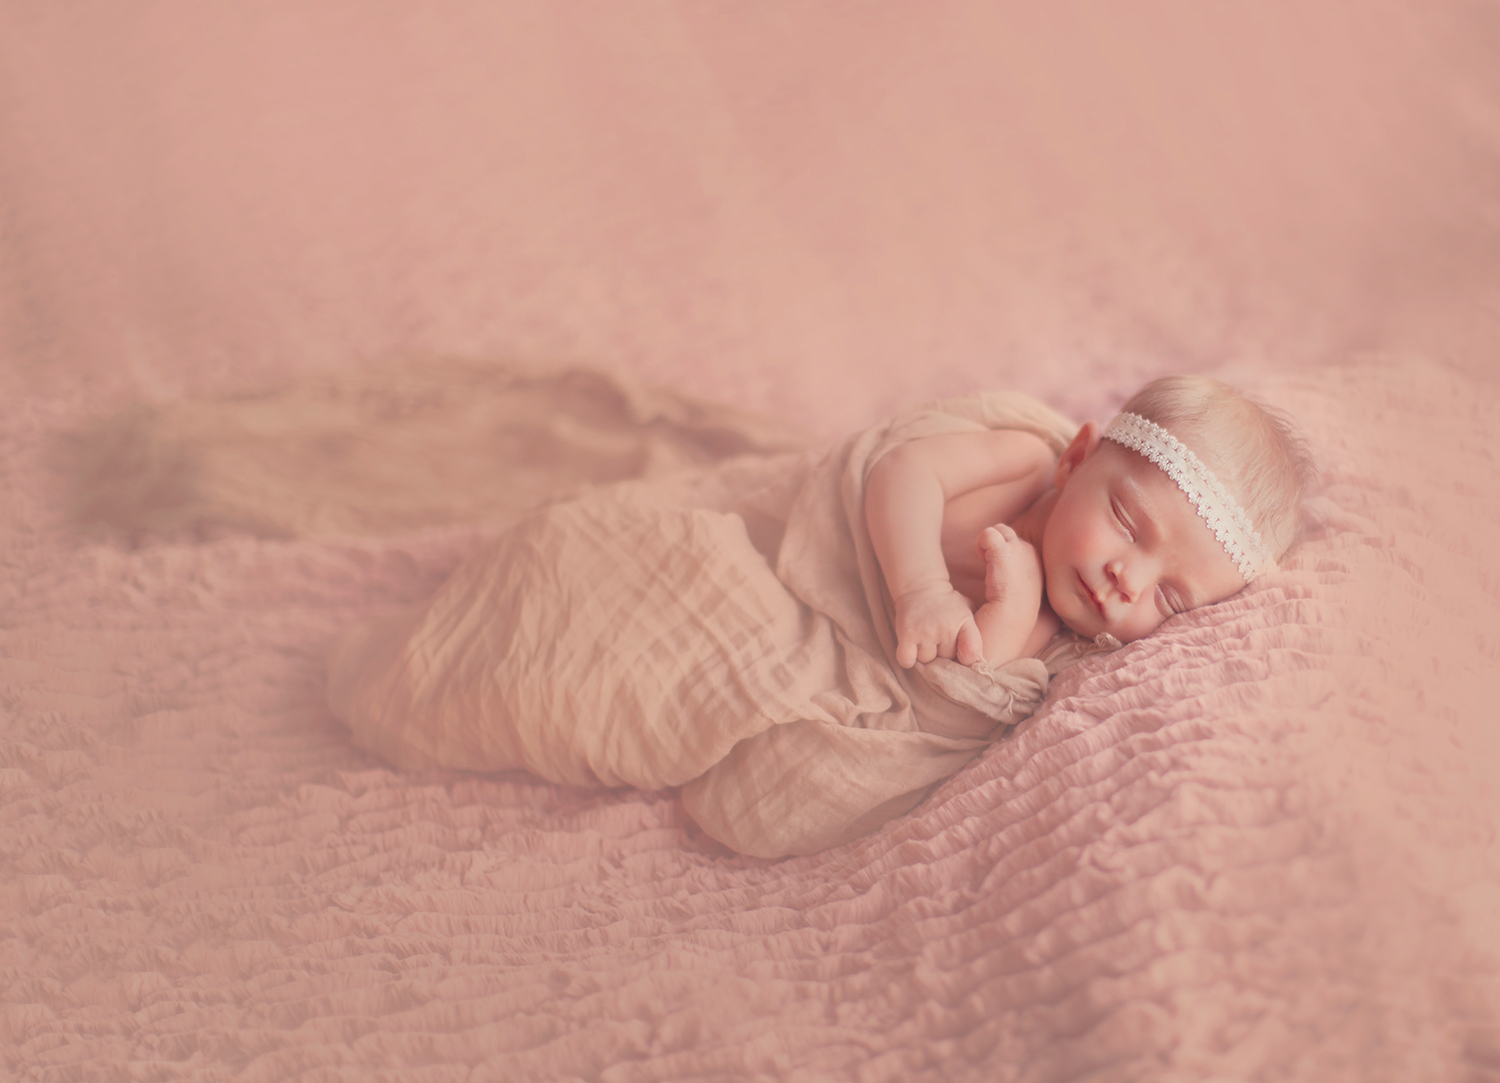 Dena_Rooney_newborn_photographer_0071.jpg